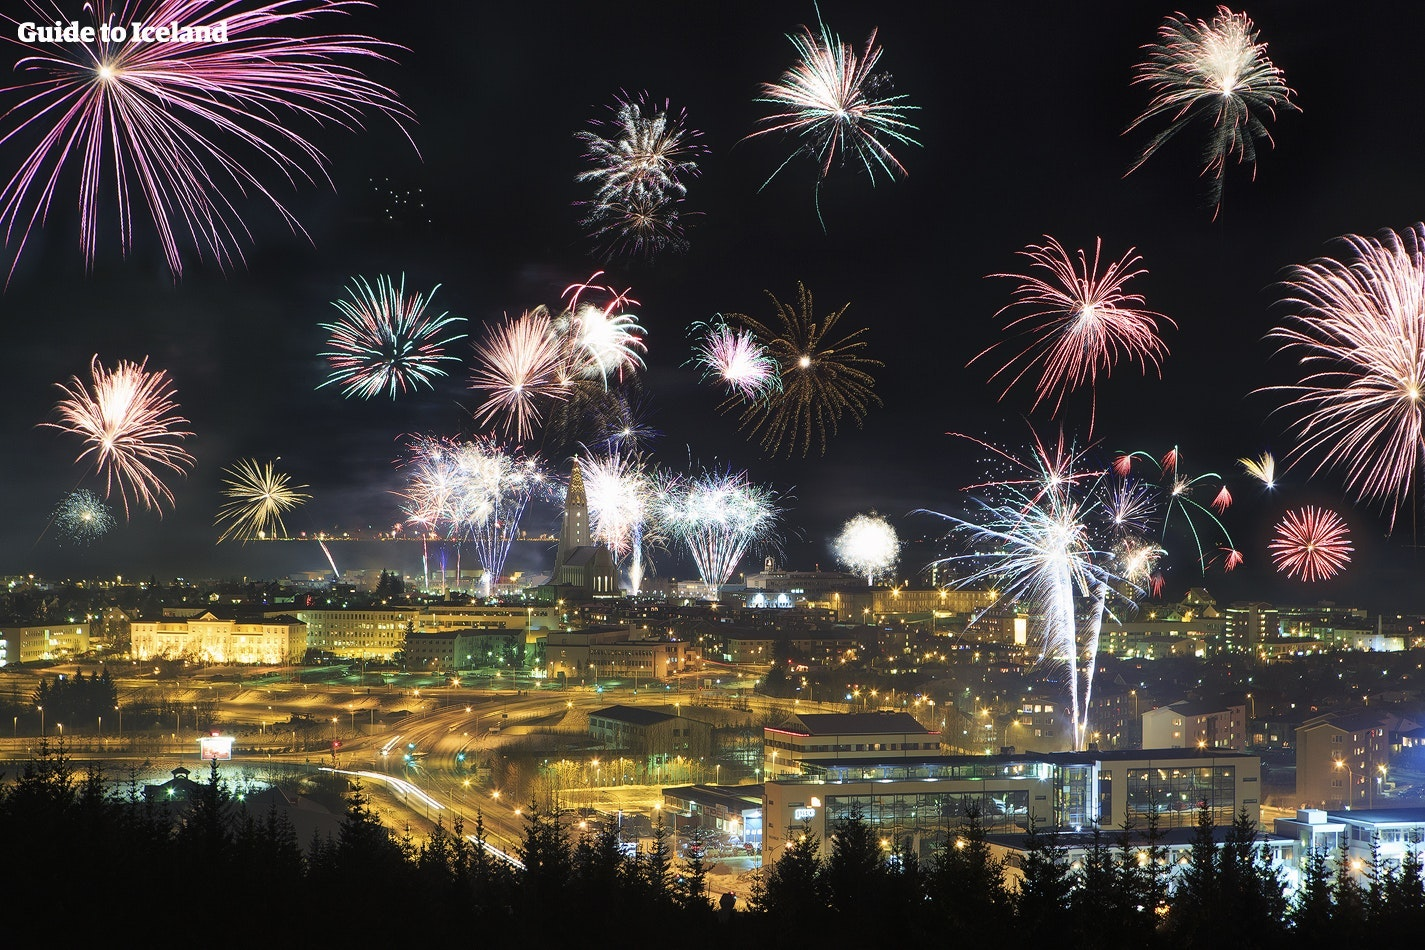 Reykjavik celebrates New Year's Eve with a brilliant display of fireworks.